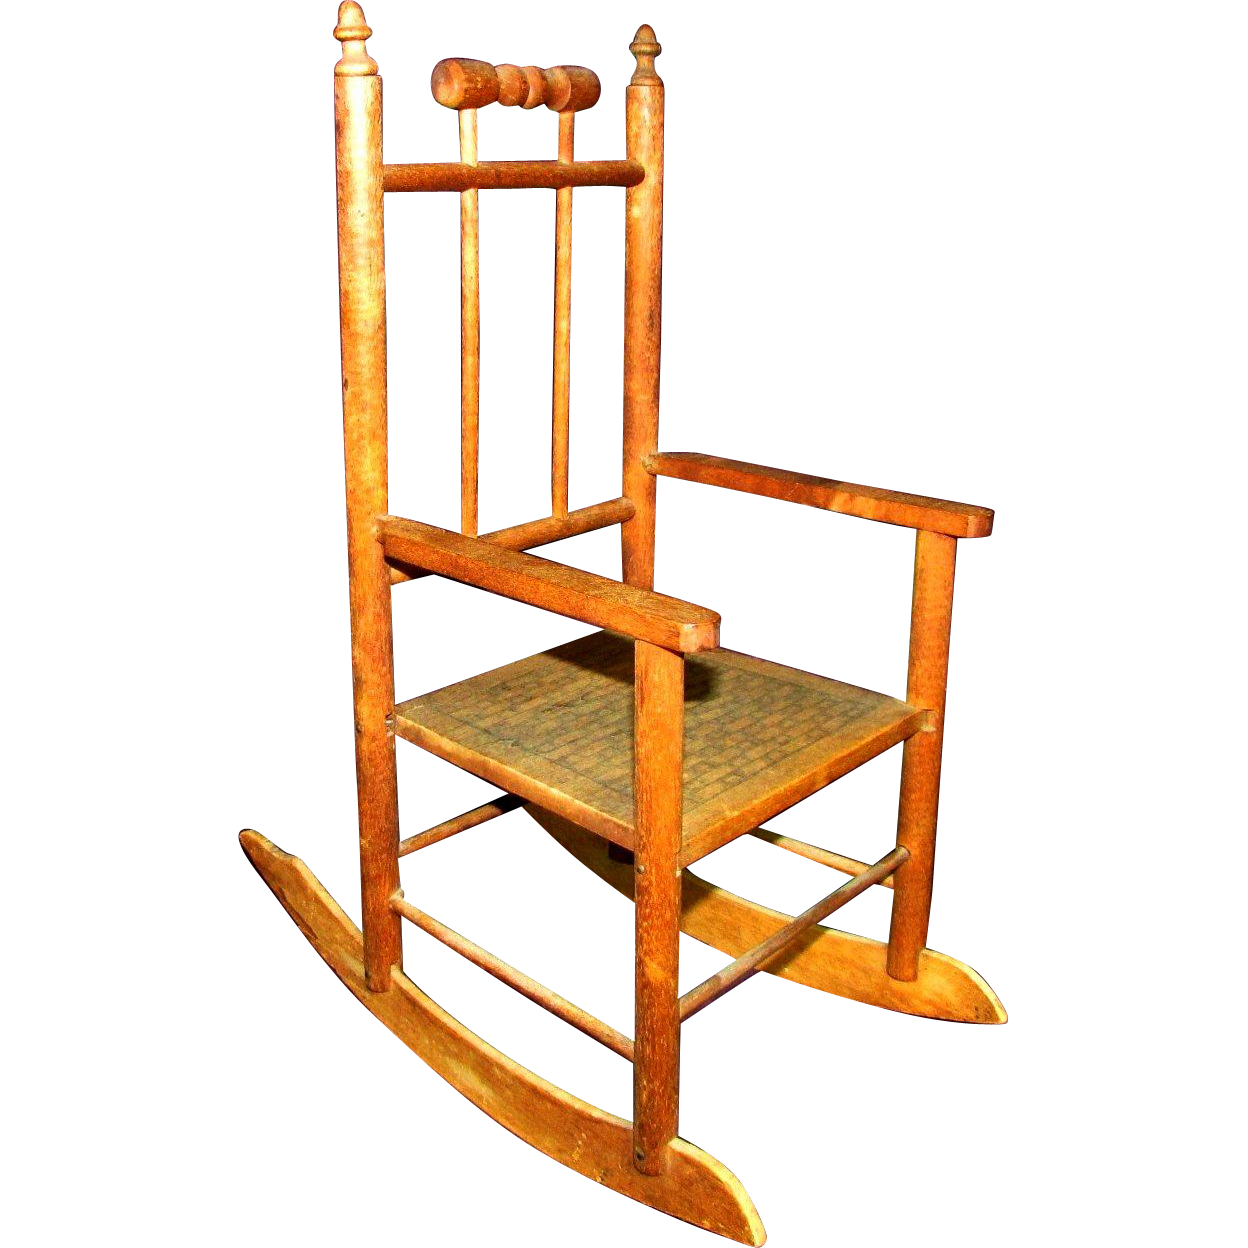 14 Antique Litho Lithograph Rocker Rocking Chair For Bear